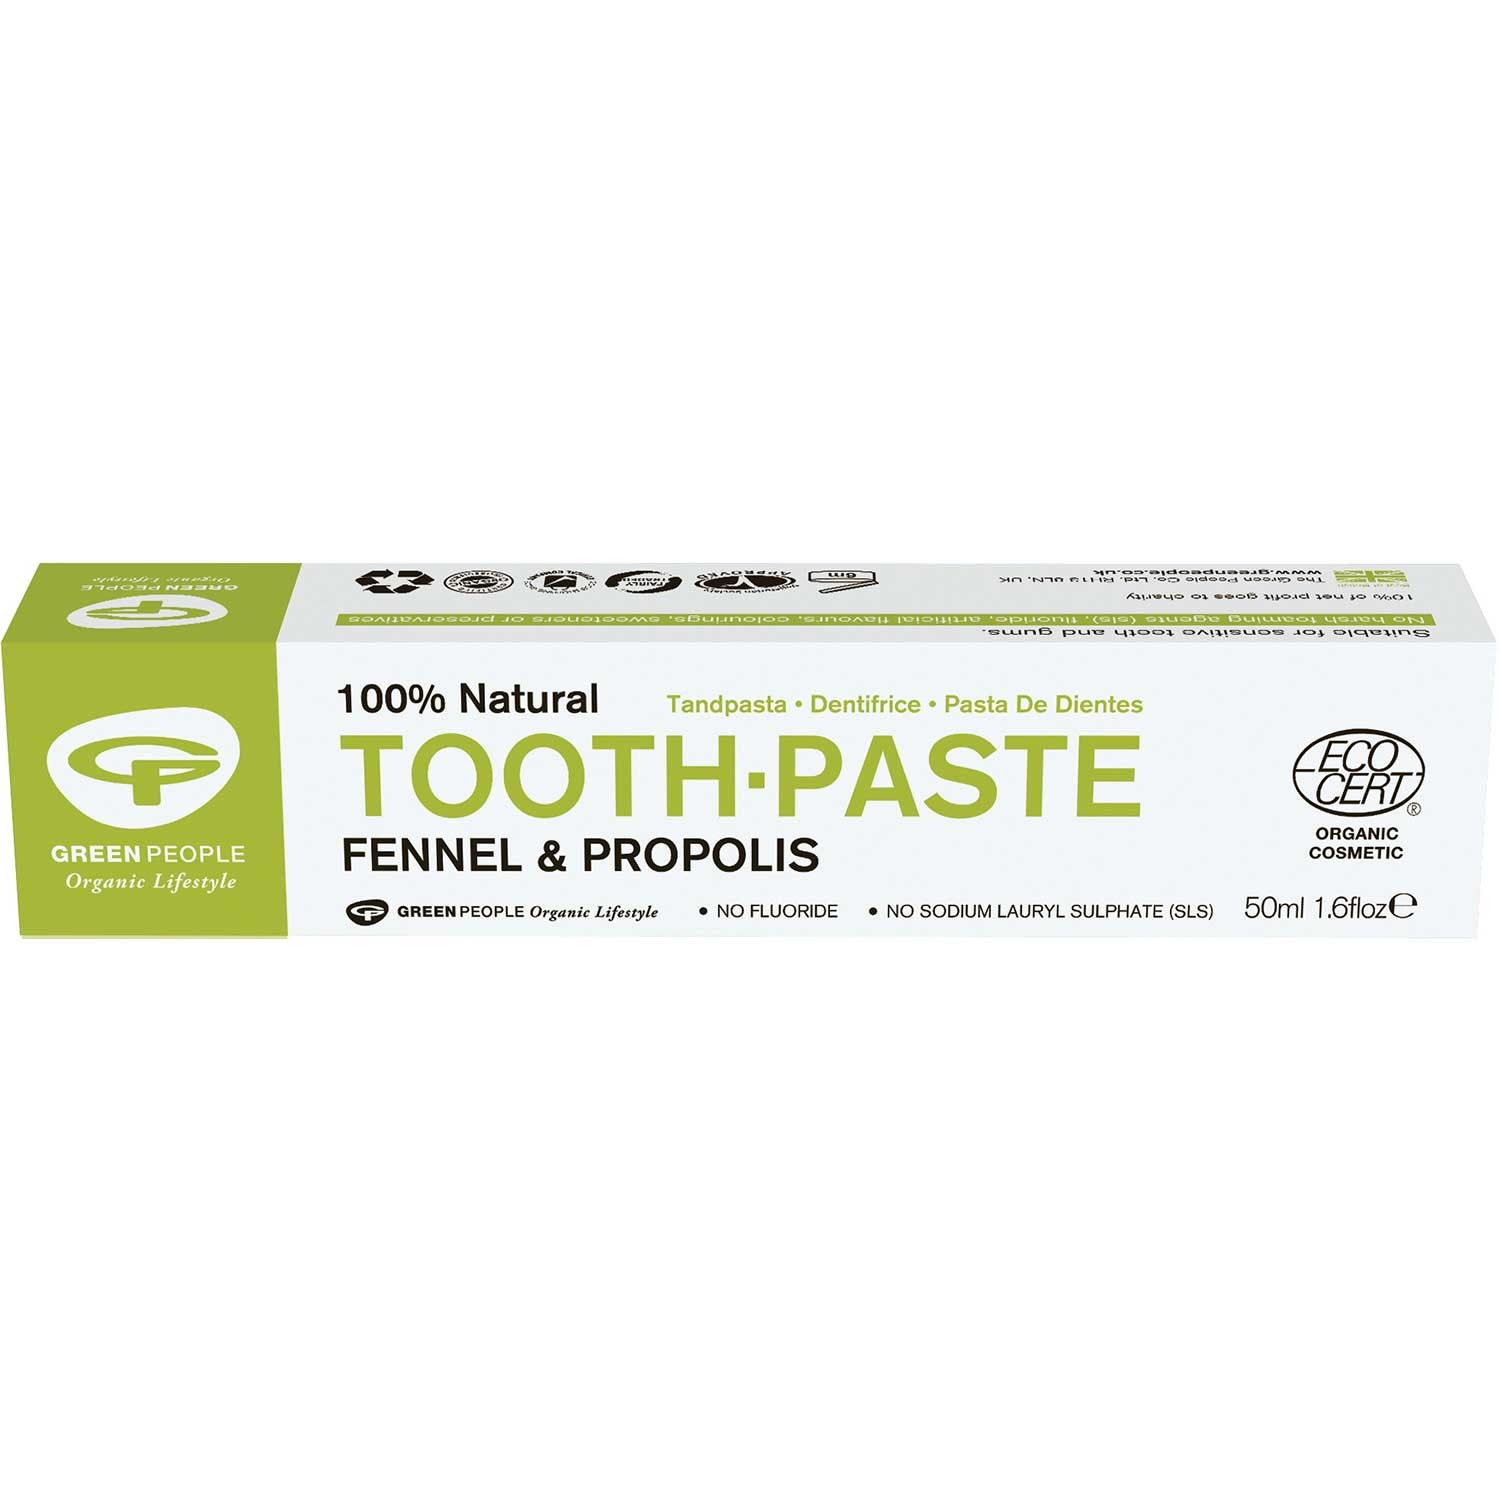 Green People Organic Fennel & Propolis Toothpaste, 50 ml.-NaturesWisdom